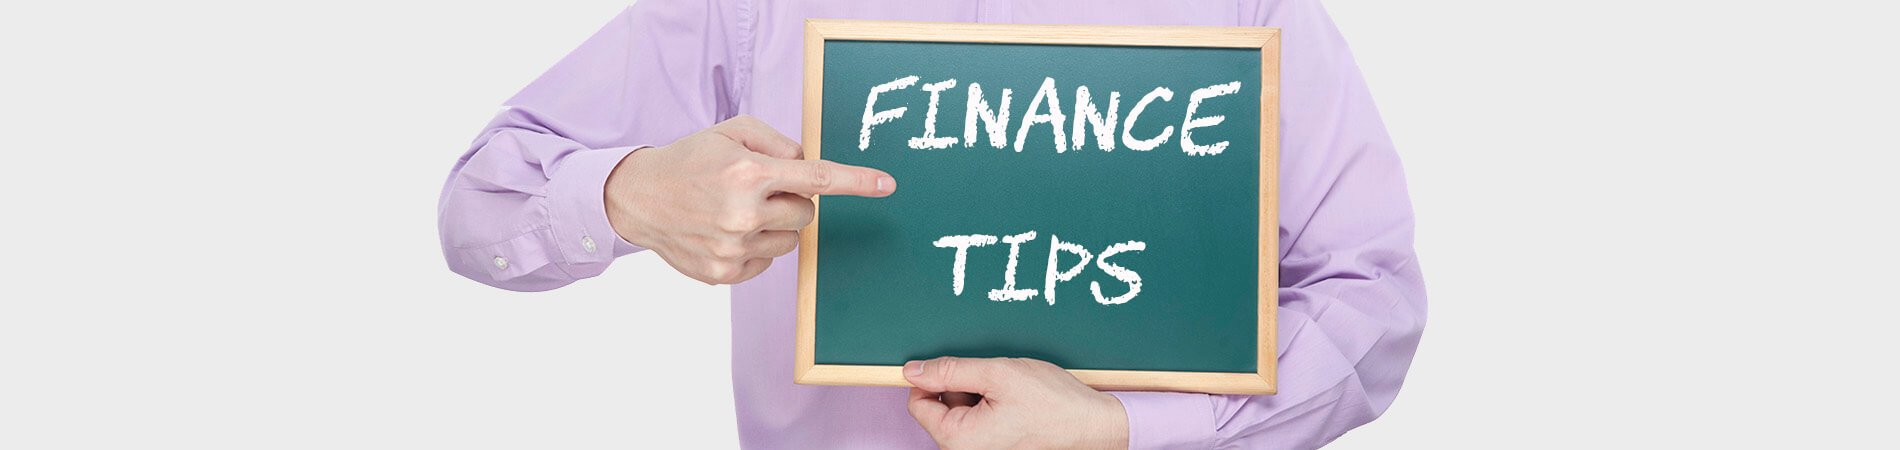 Top 6 Personal Finance Tips